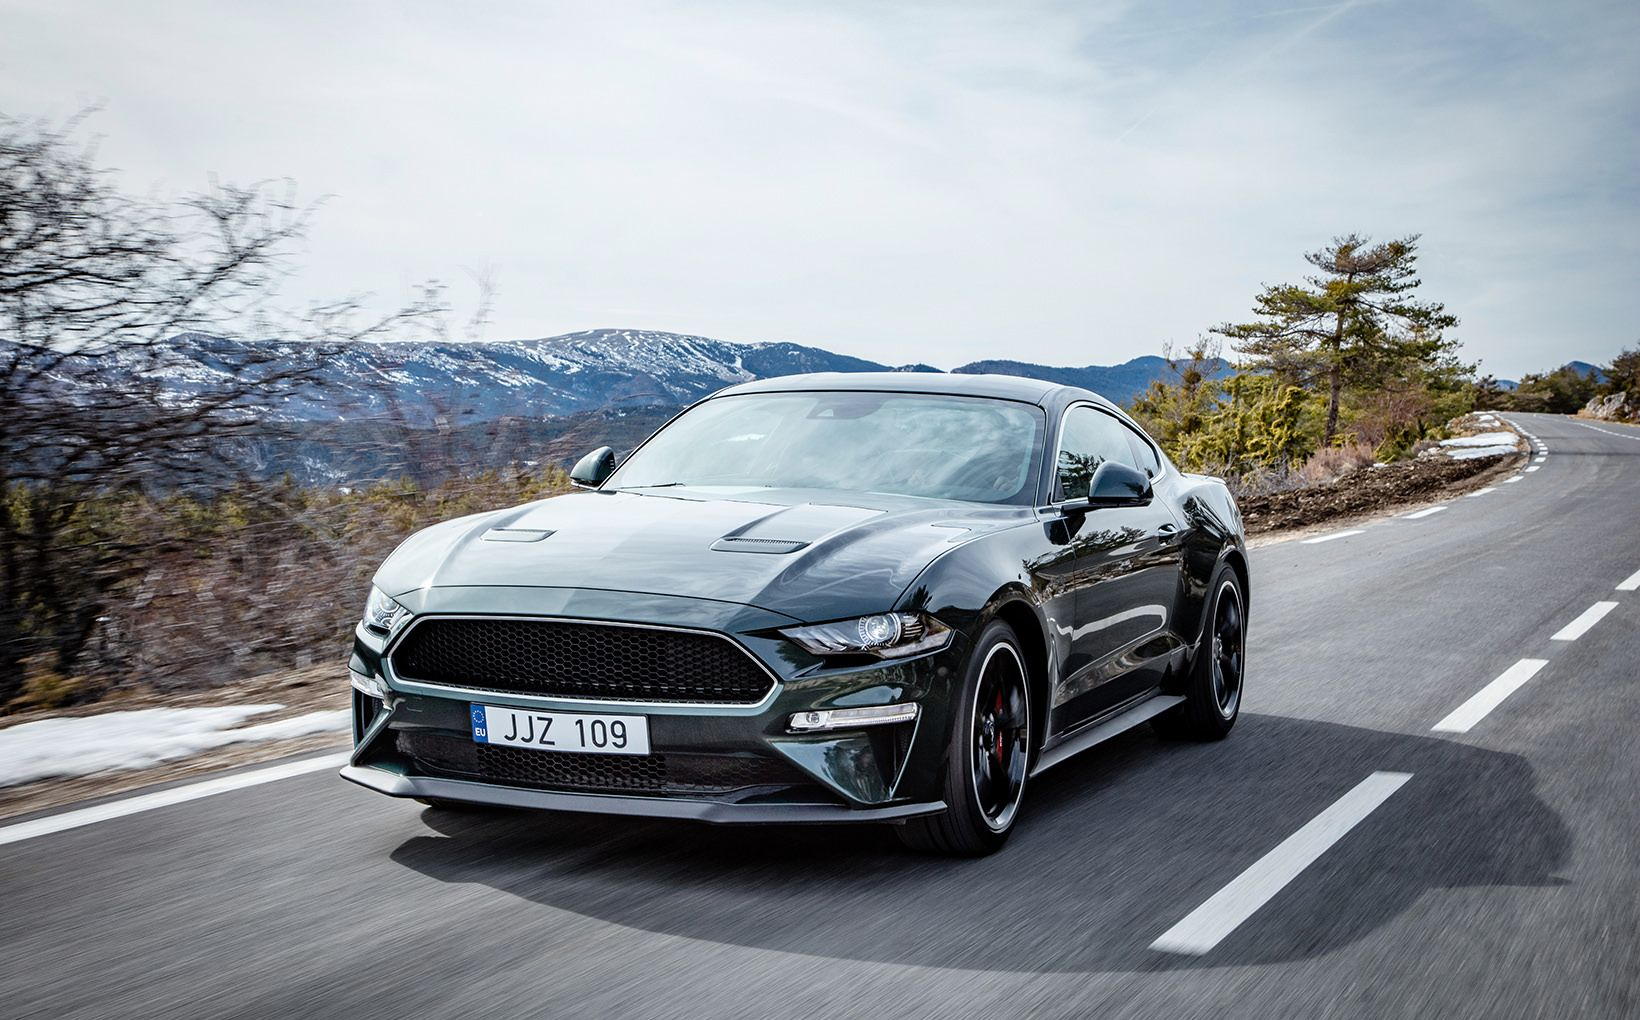 This is the euro market mustang bullitt launched at the geneva motor show in early march ours will be virtually identical to this